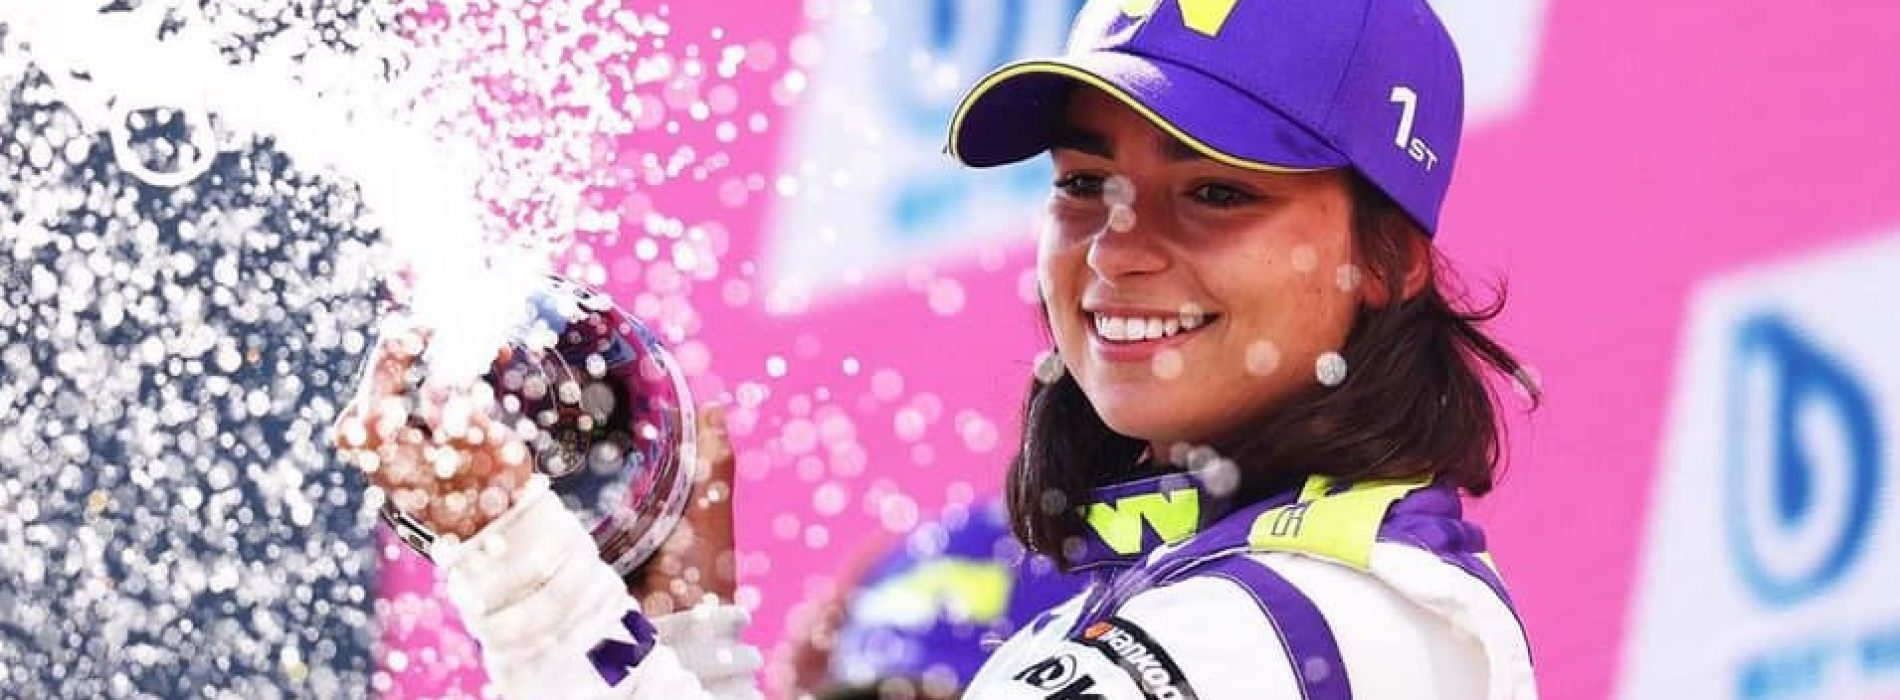 WSeries Race 2 at F1 Austrian Grand Prix confirms depth of talent, scope, and scale for growth over time